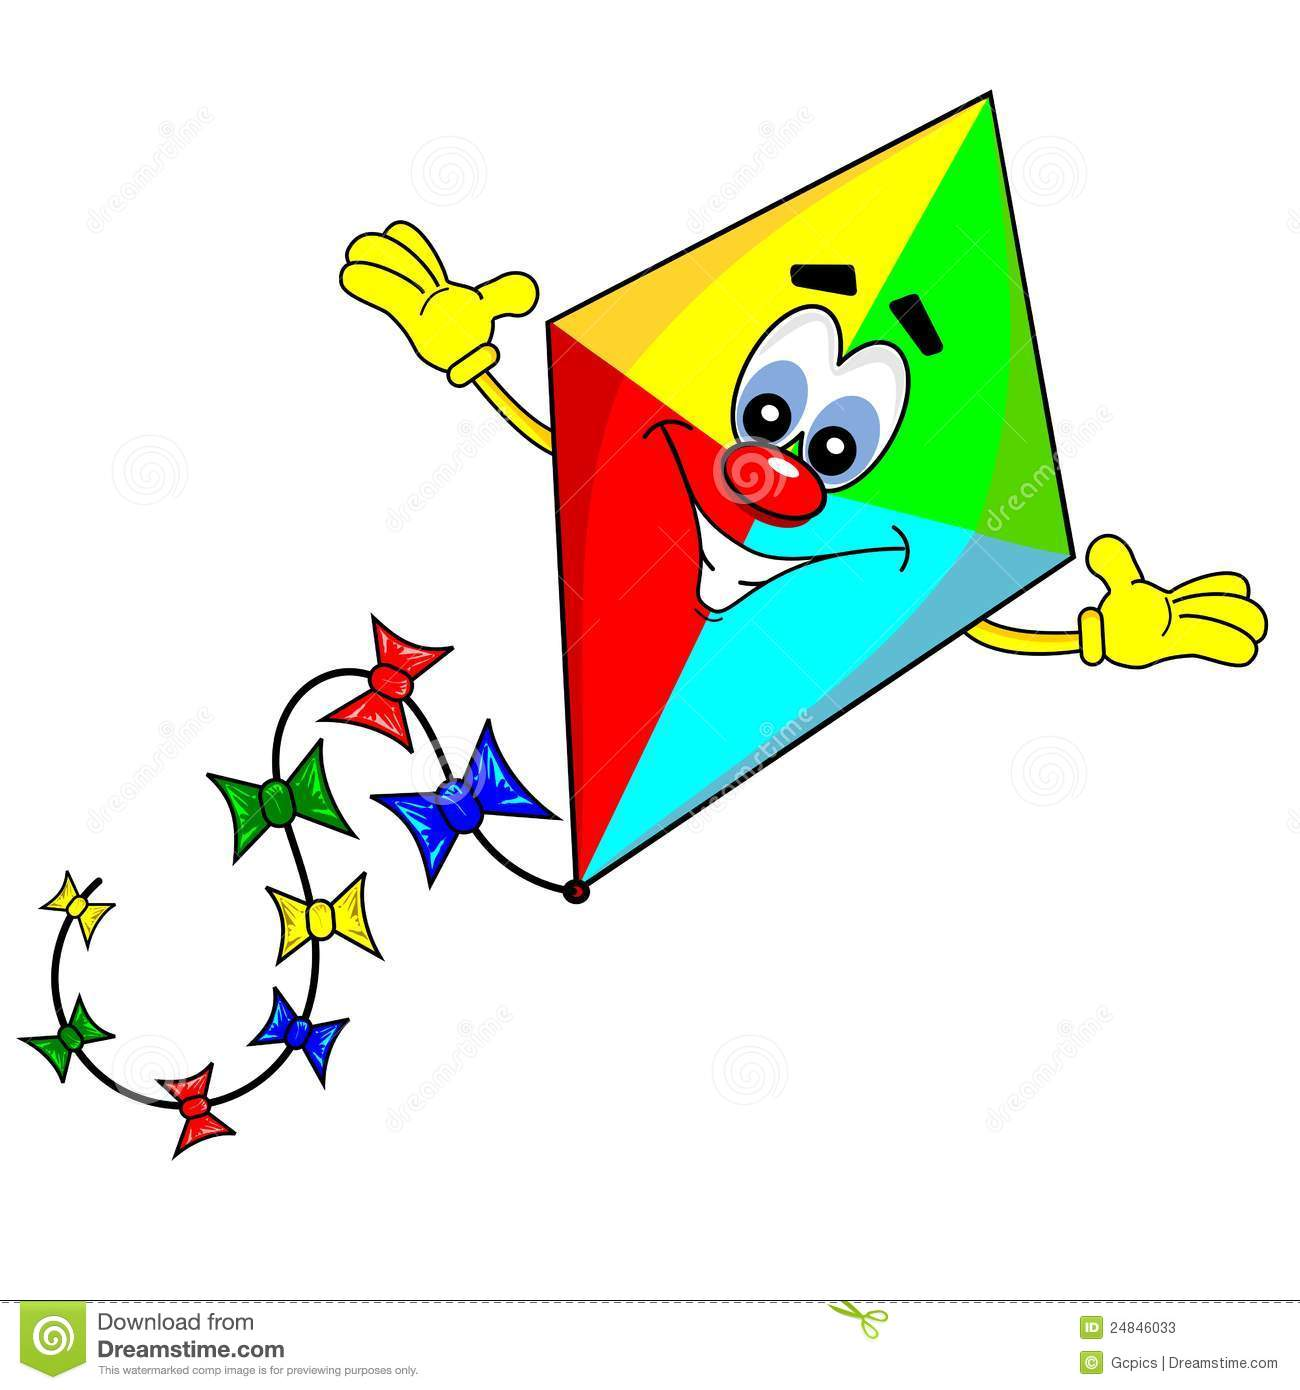 cartoon kite with smiling face on white background.